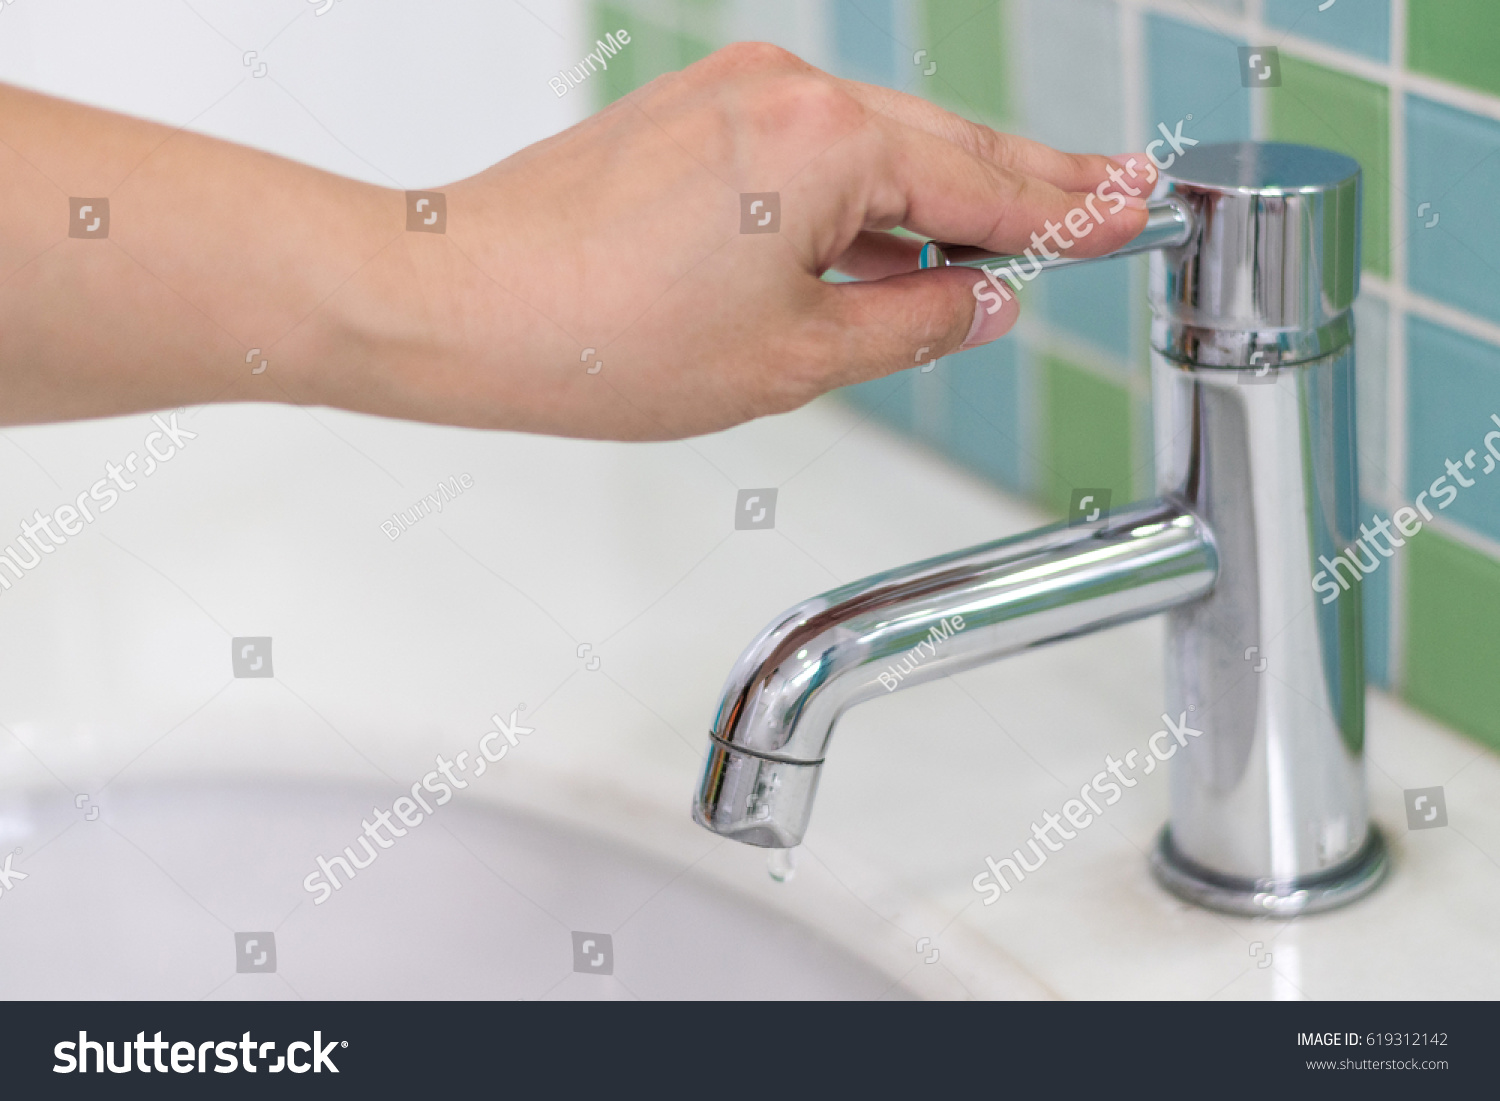 Image Hand Closing Valve On Sink Stock Photo (Royalty Free ...